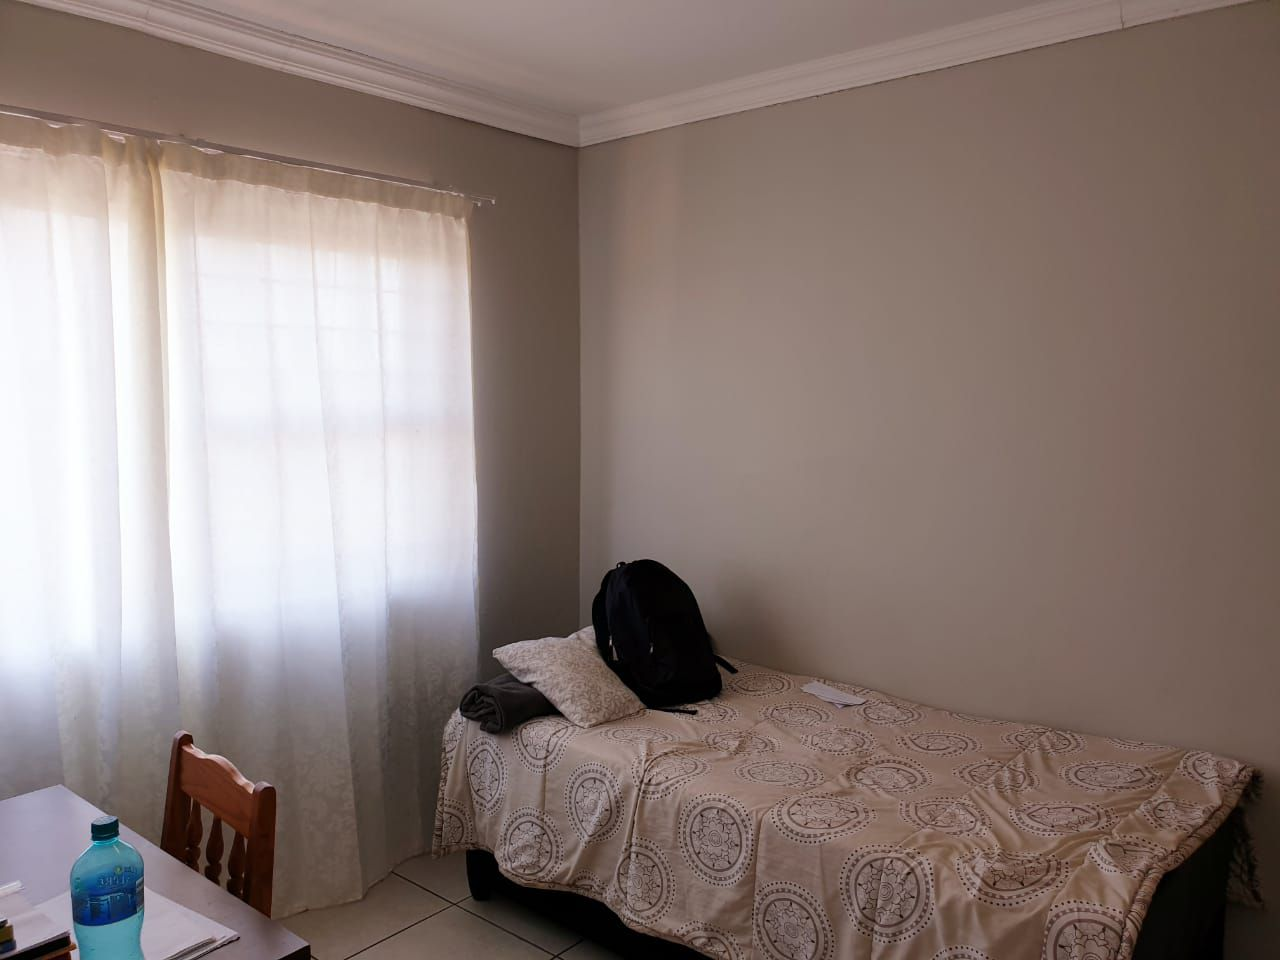 Apartment in Bult - WhatsApp Image 2019-09-17 at 12.30.07 (1).jpeg